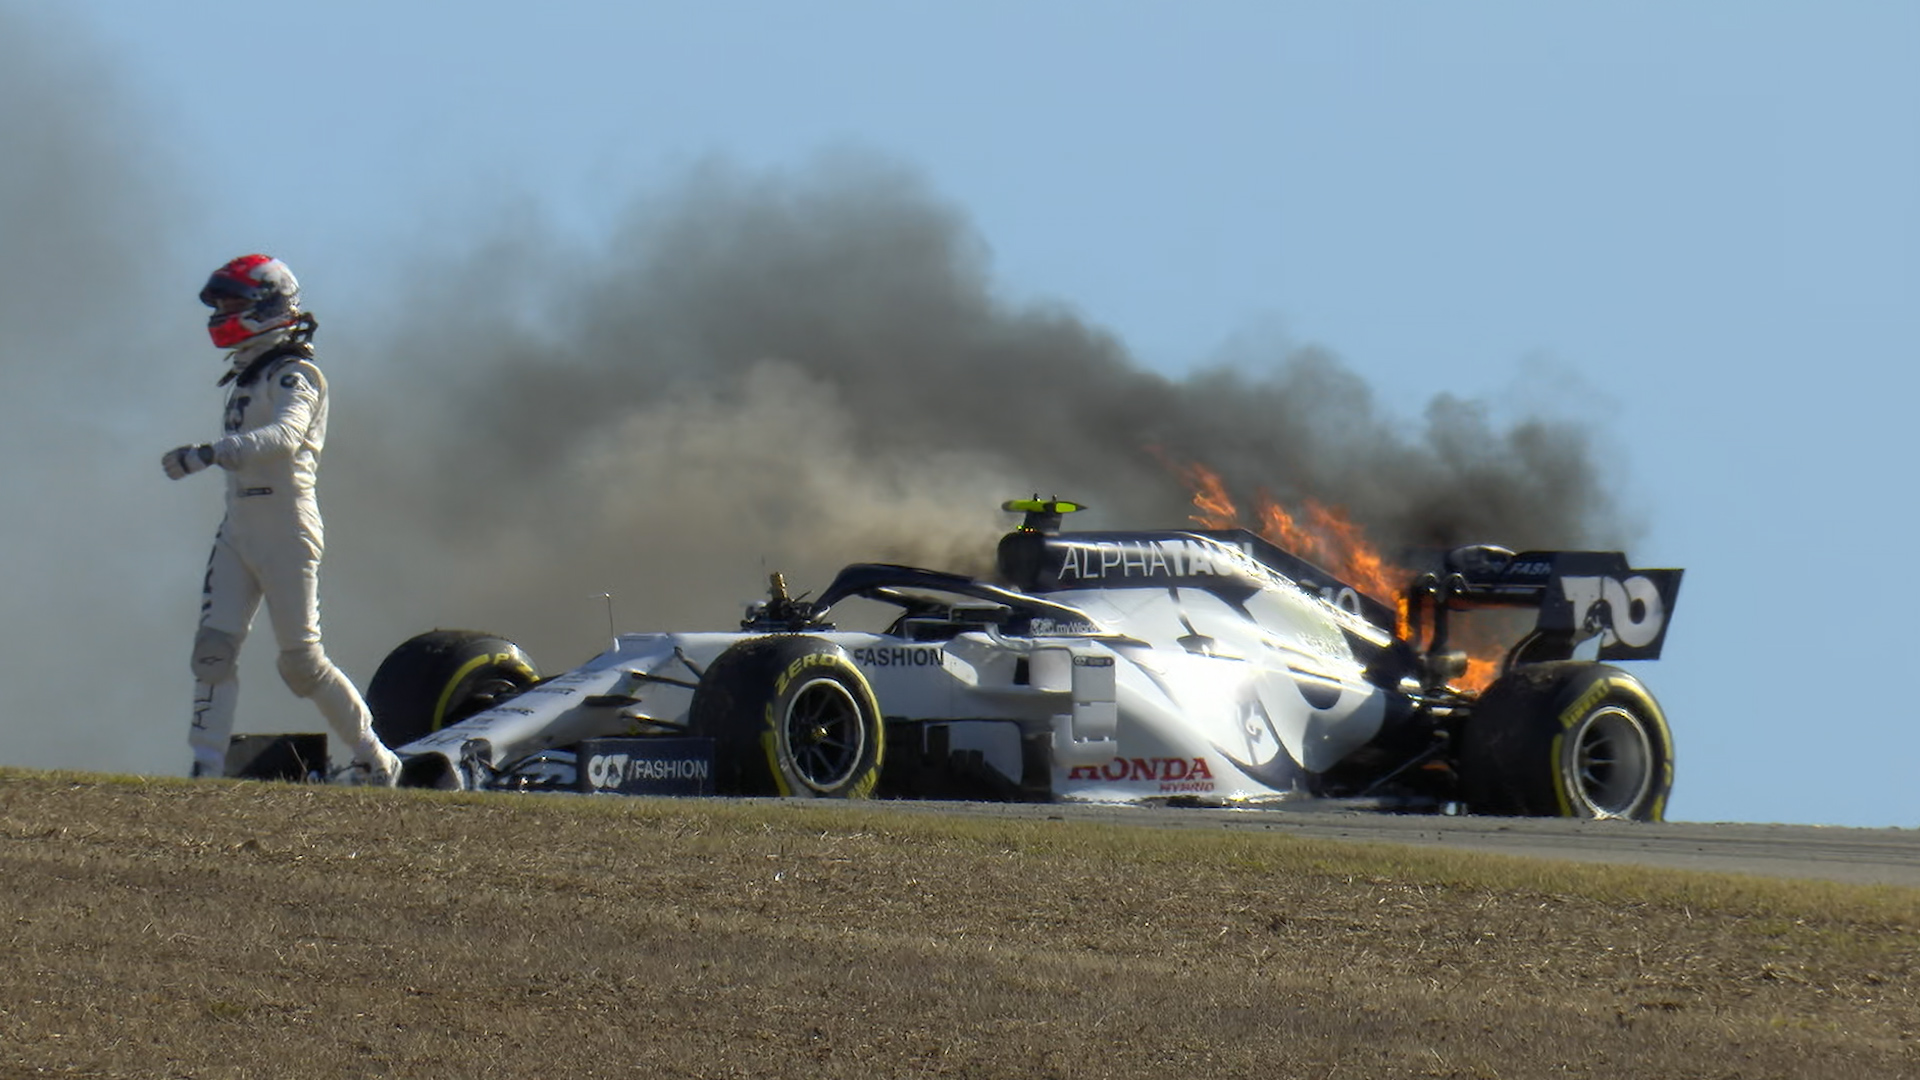 2020 Portuguese GP FP2: AlphaTauri inferno as Gasly catches fireon fire